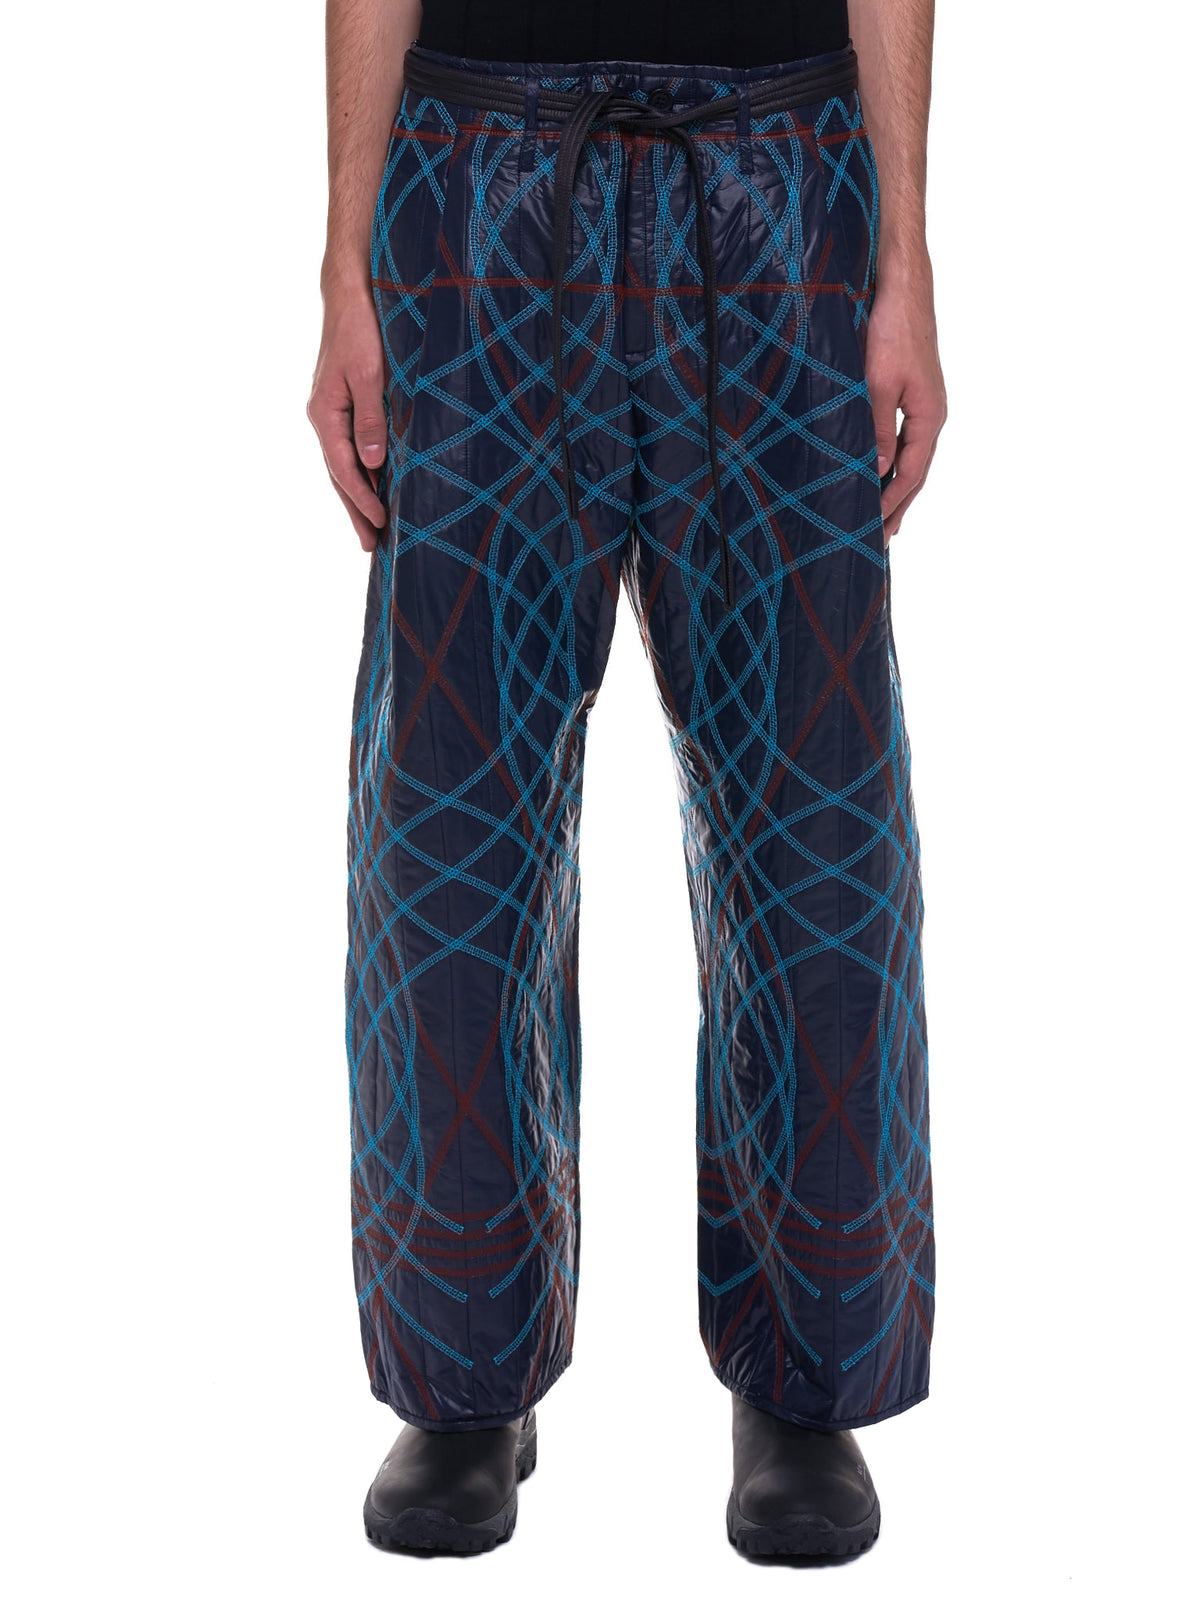 Embroidery Swirl Trousers (MWOTRS07-DARK-NAVY)